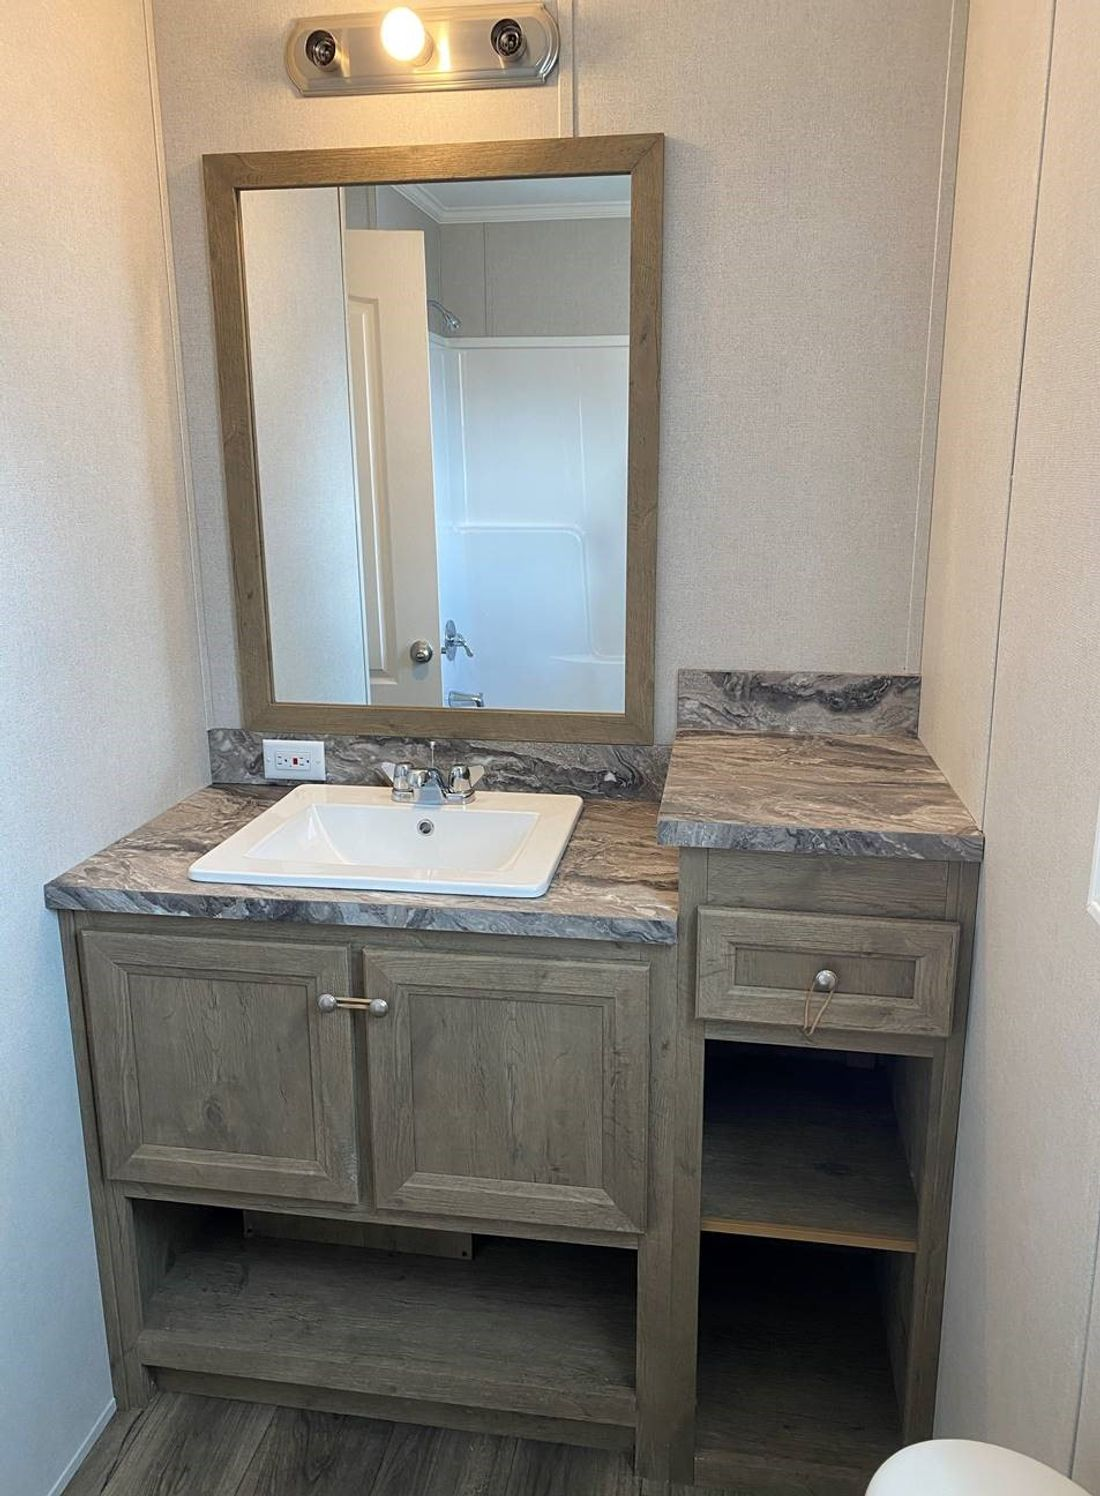 The HICKORY 4414-40 Master Bathroom. This Manufactured Mobile Home features 1 bedroom and 1 bath.